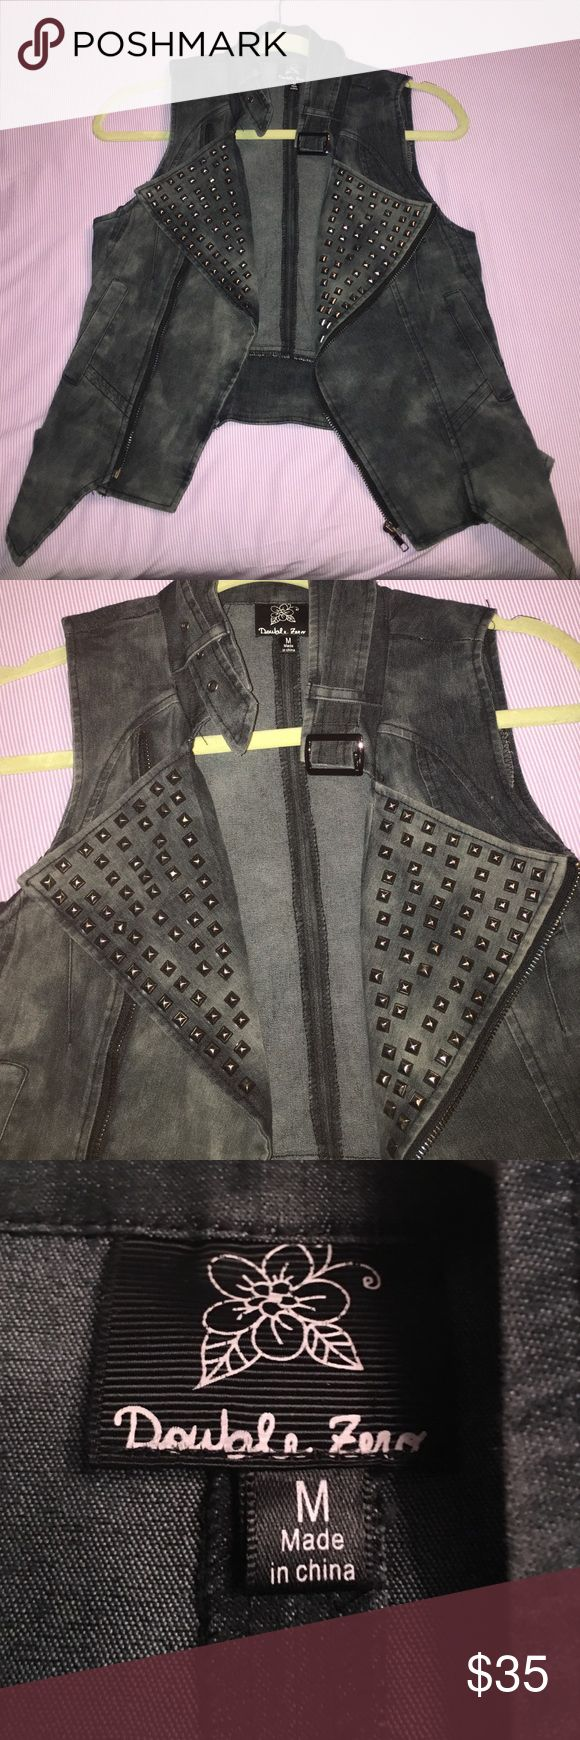 Women's charcoal gray vest In excellent condition worn once. Gray semi tie dye women's jean vest. Folds over by the breast area with patches of studs. Belt around the neck. Very cool and trendy. Has a zipper. 2 pockets on the sides too Double Zero Jackets & Coats Vests